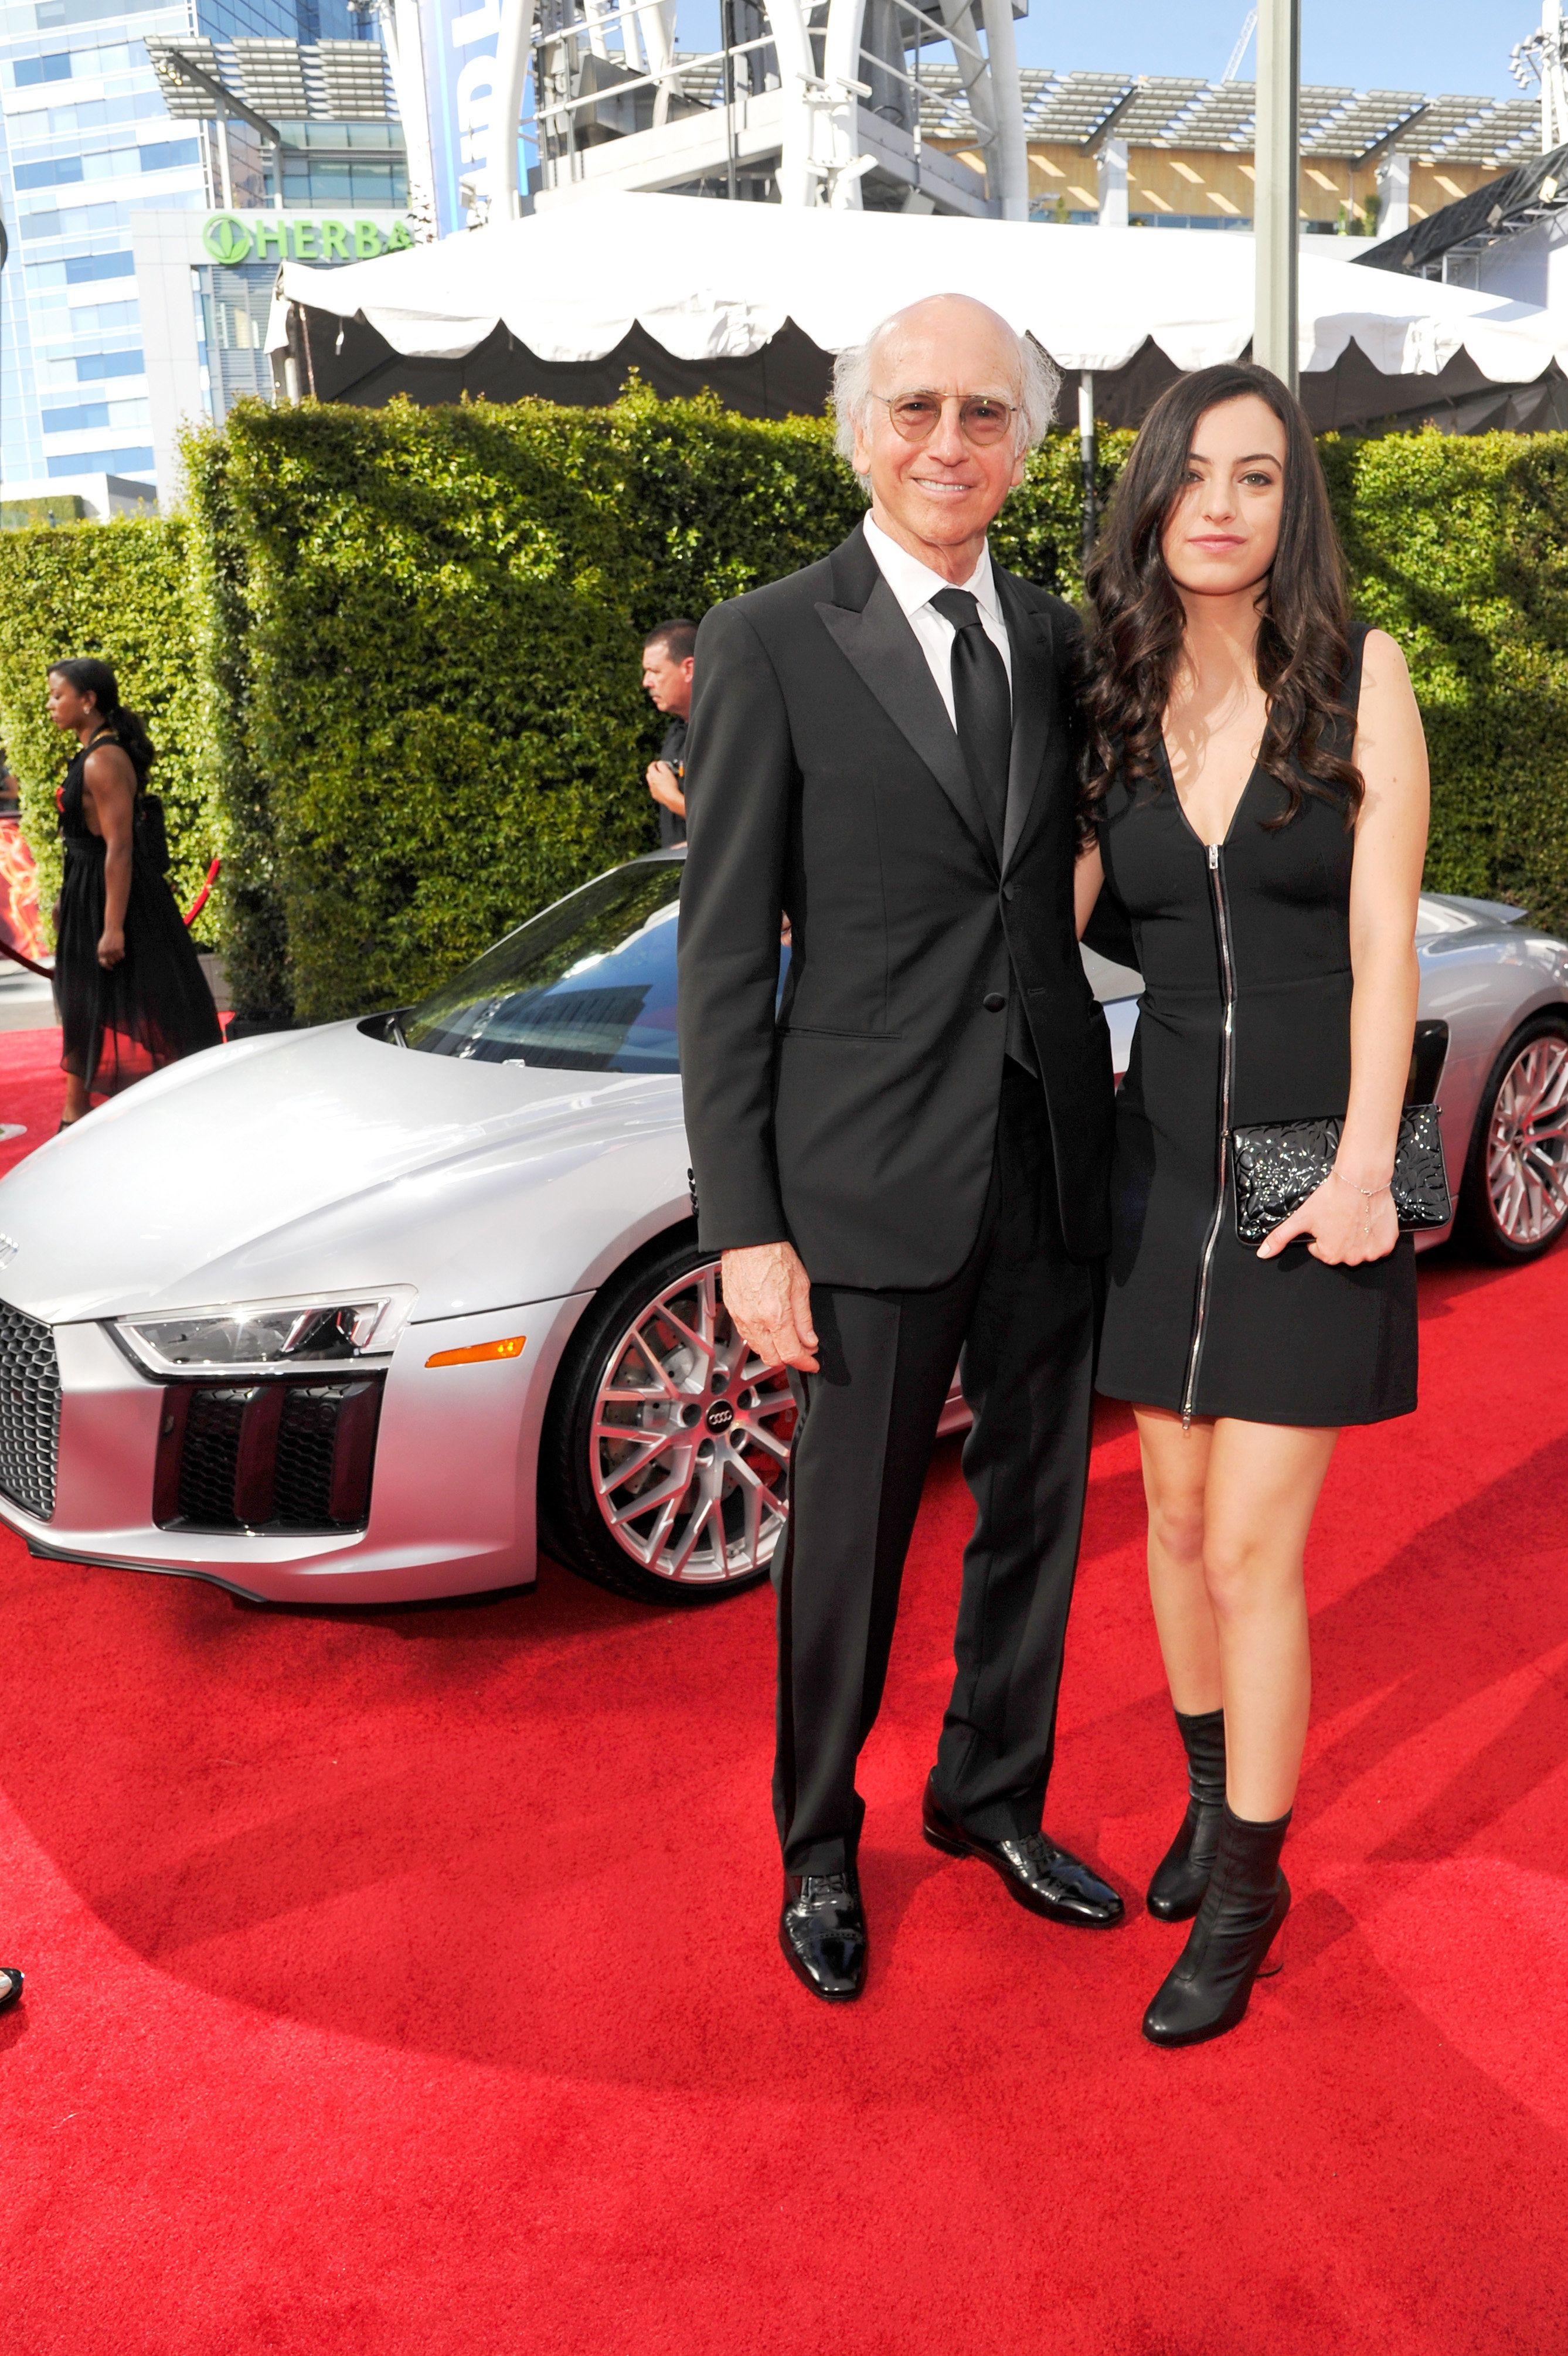 Larry David's Daughter's New Web Series Is Like 'Curb' For